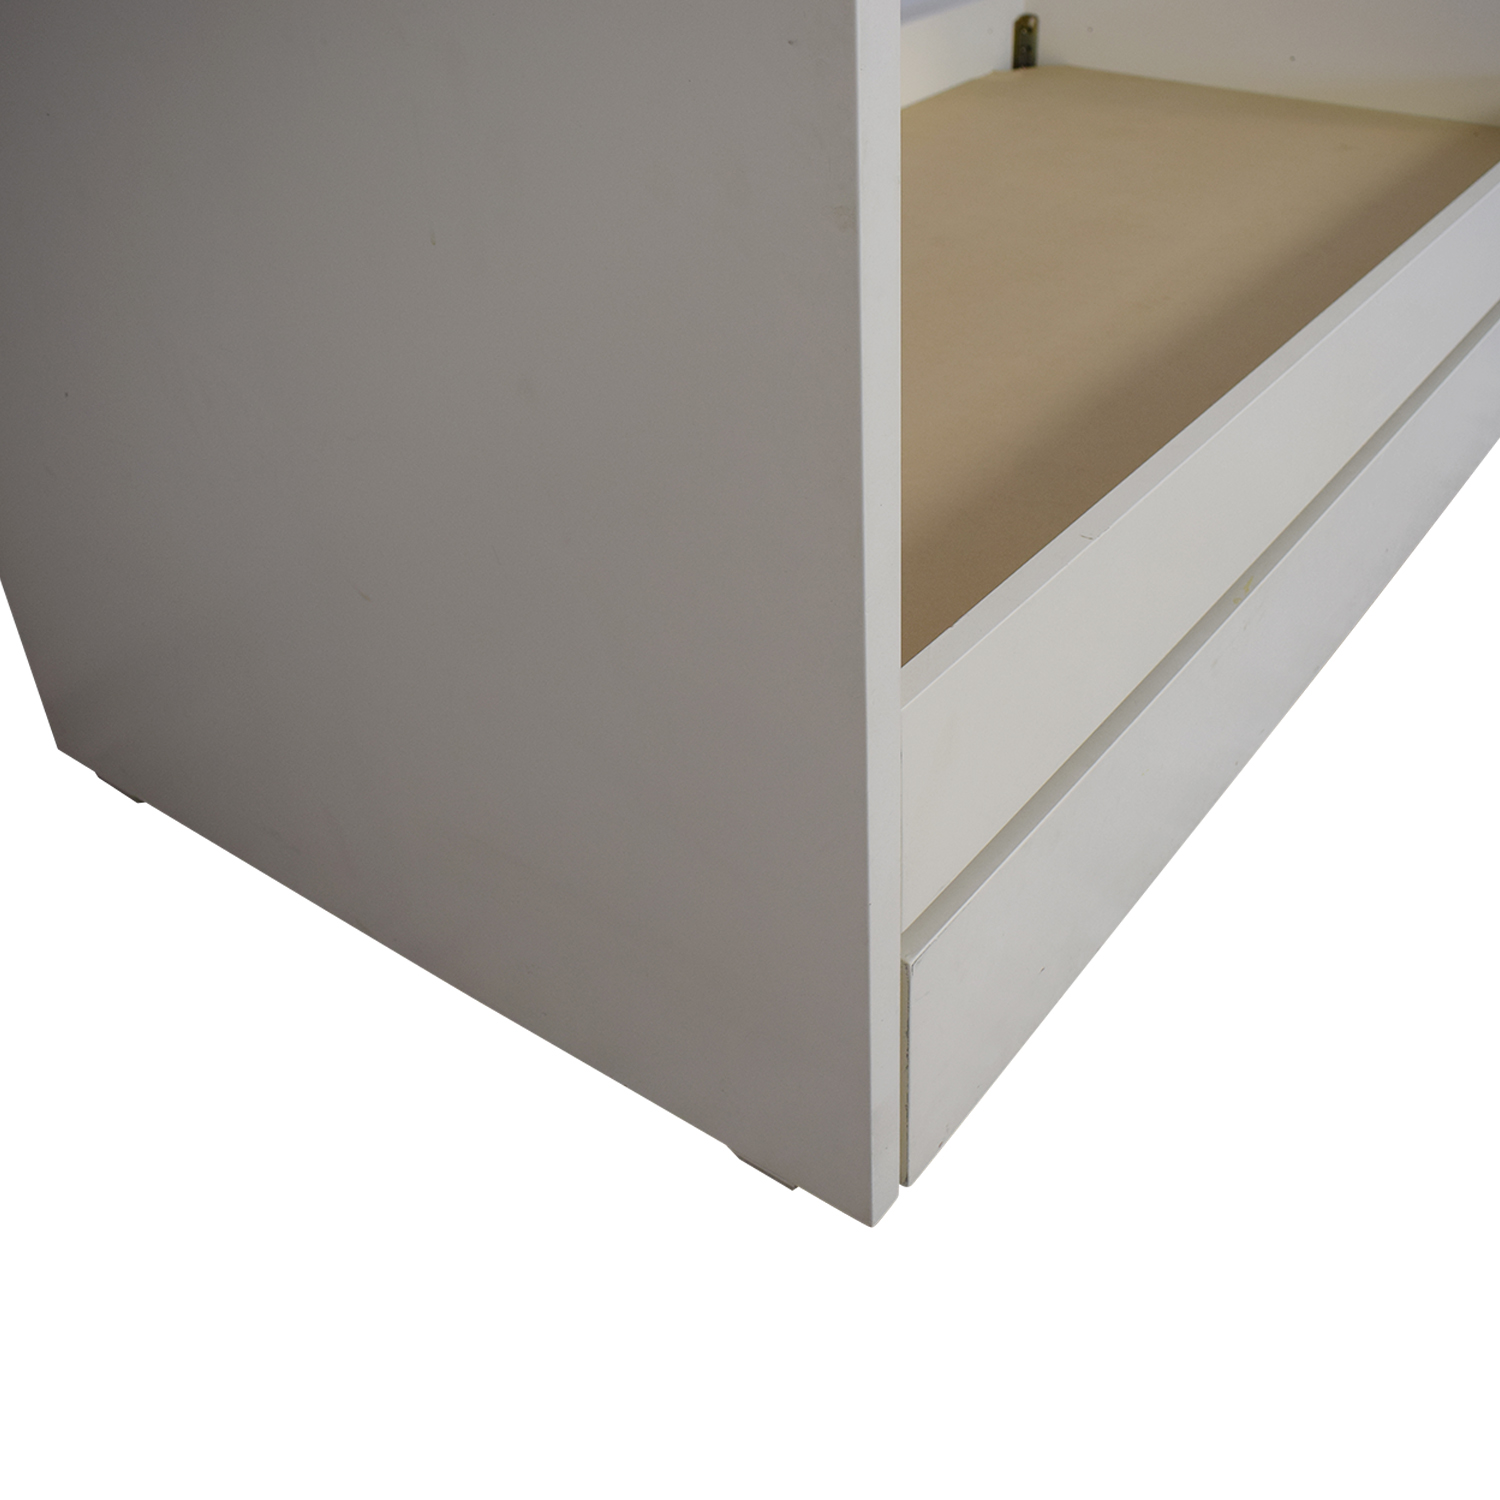 Room & Board Room & Board Twin Child's Bed with Trundle dimensions